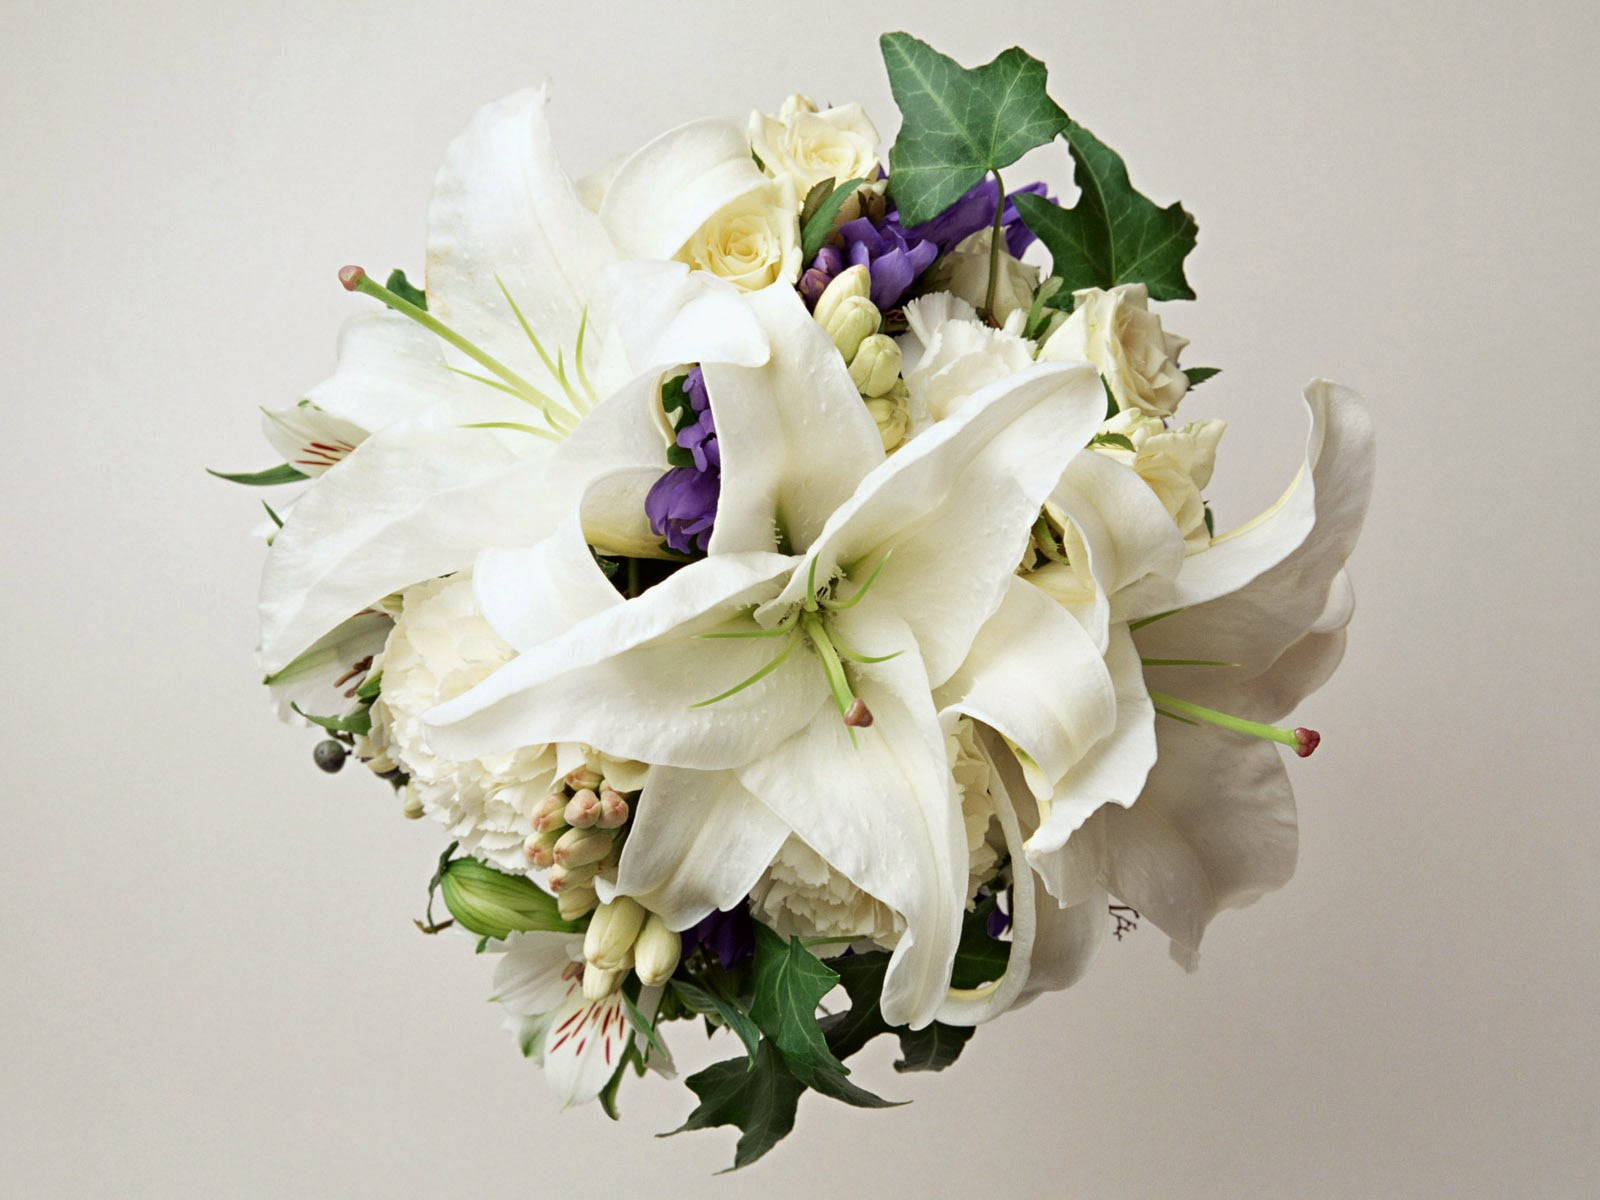 Wedding lily flowerhttprefreshrosespot lily flowers for wedding 2014 dhlflorist Choice Image